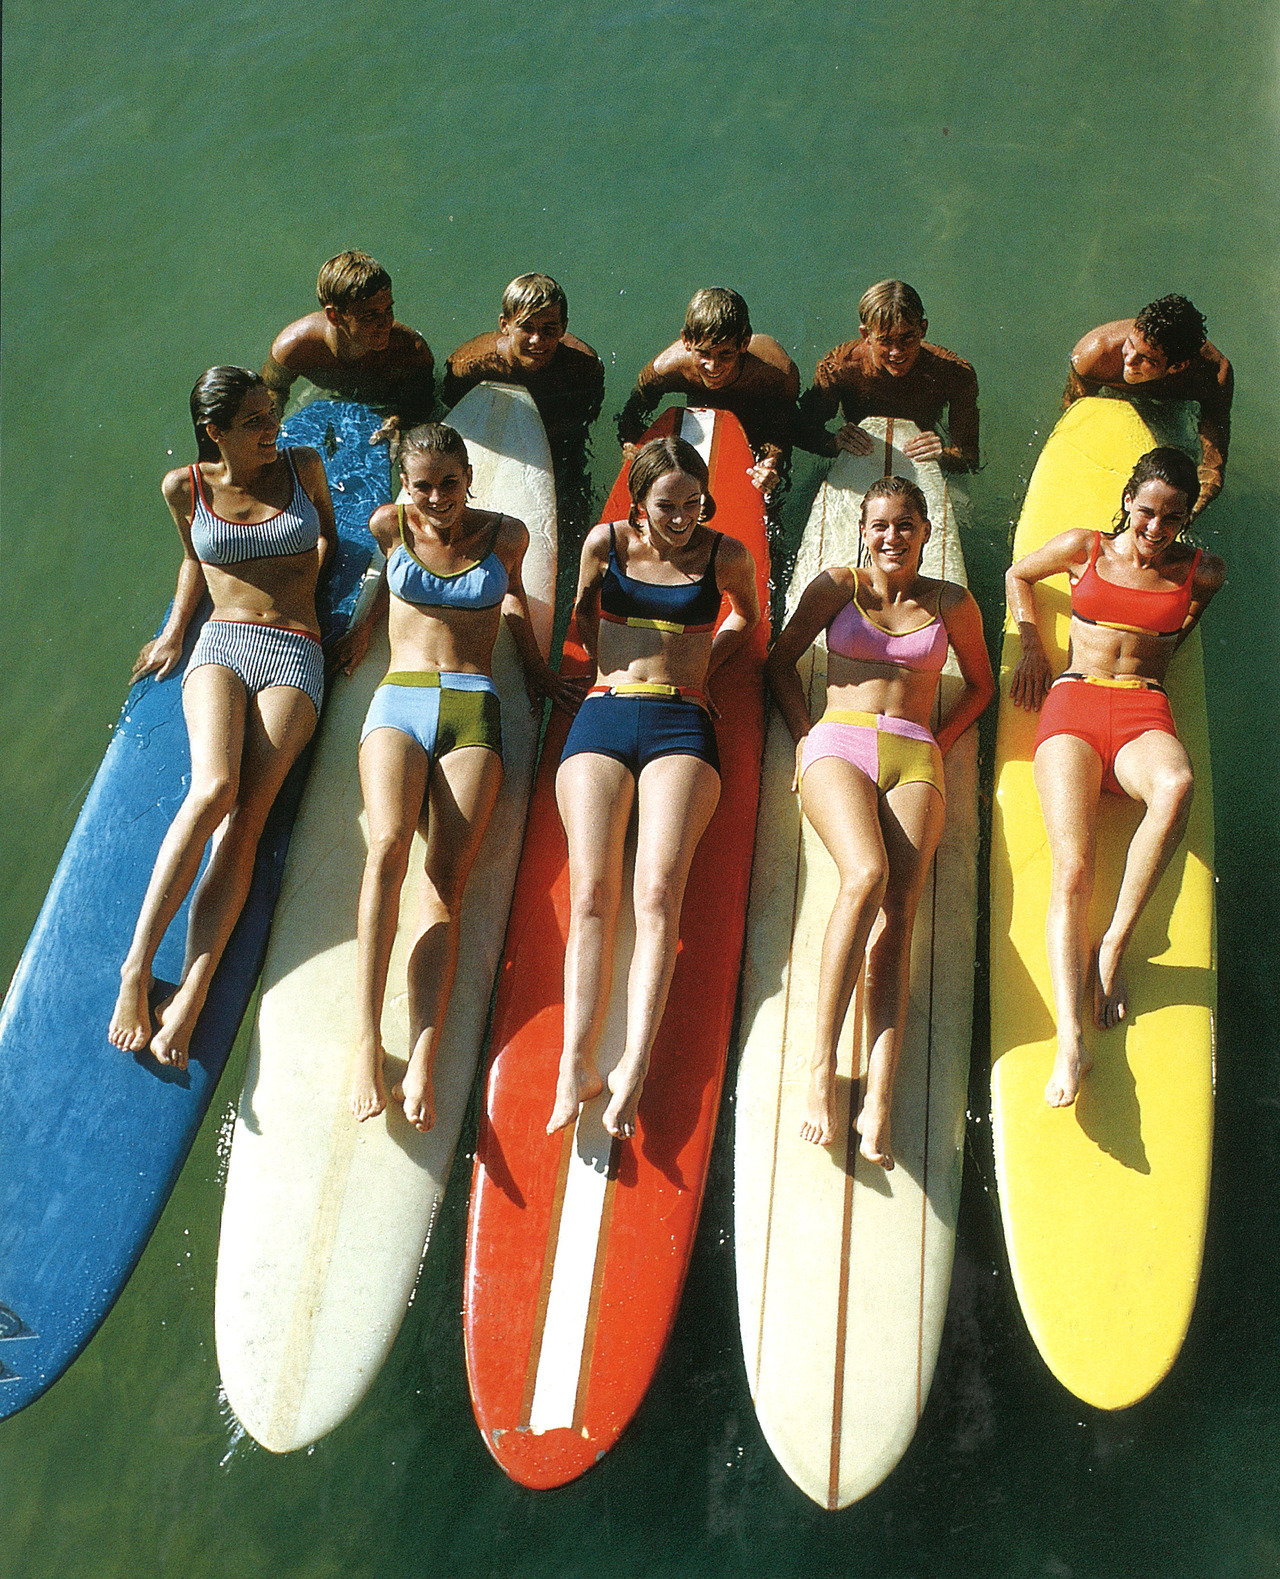 Sunning surfers in 1965, courtesy of Everett Collection.